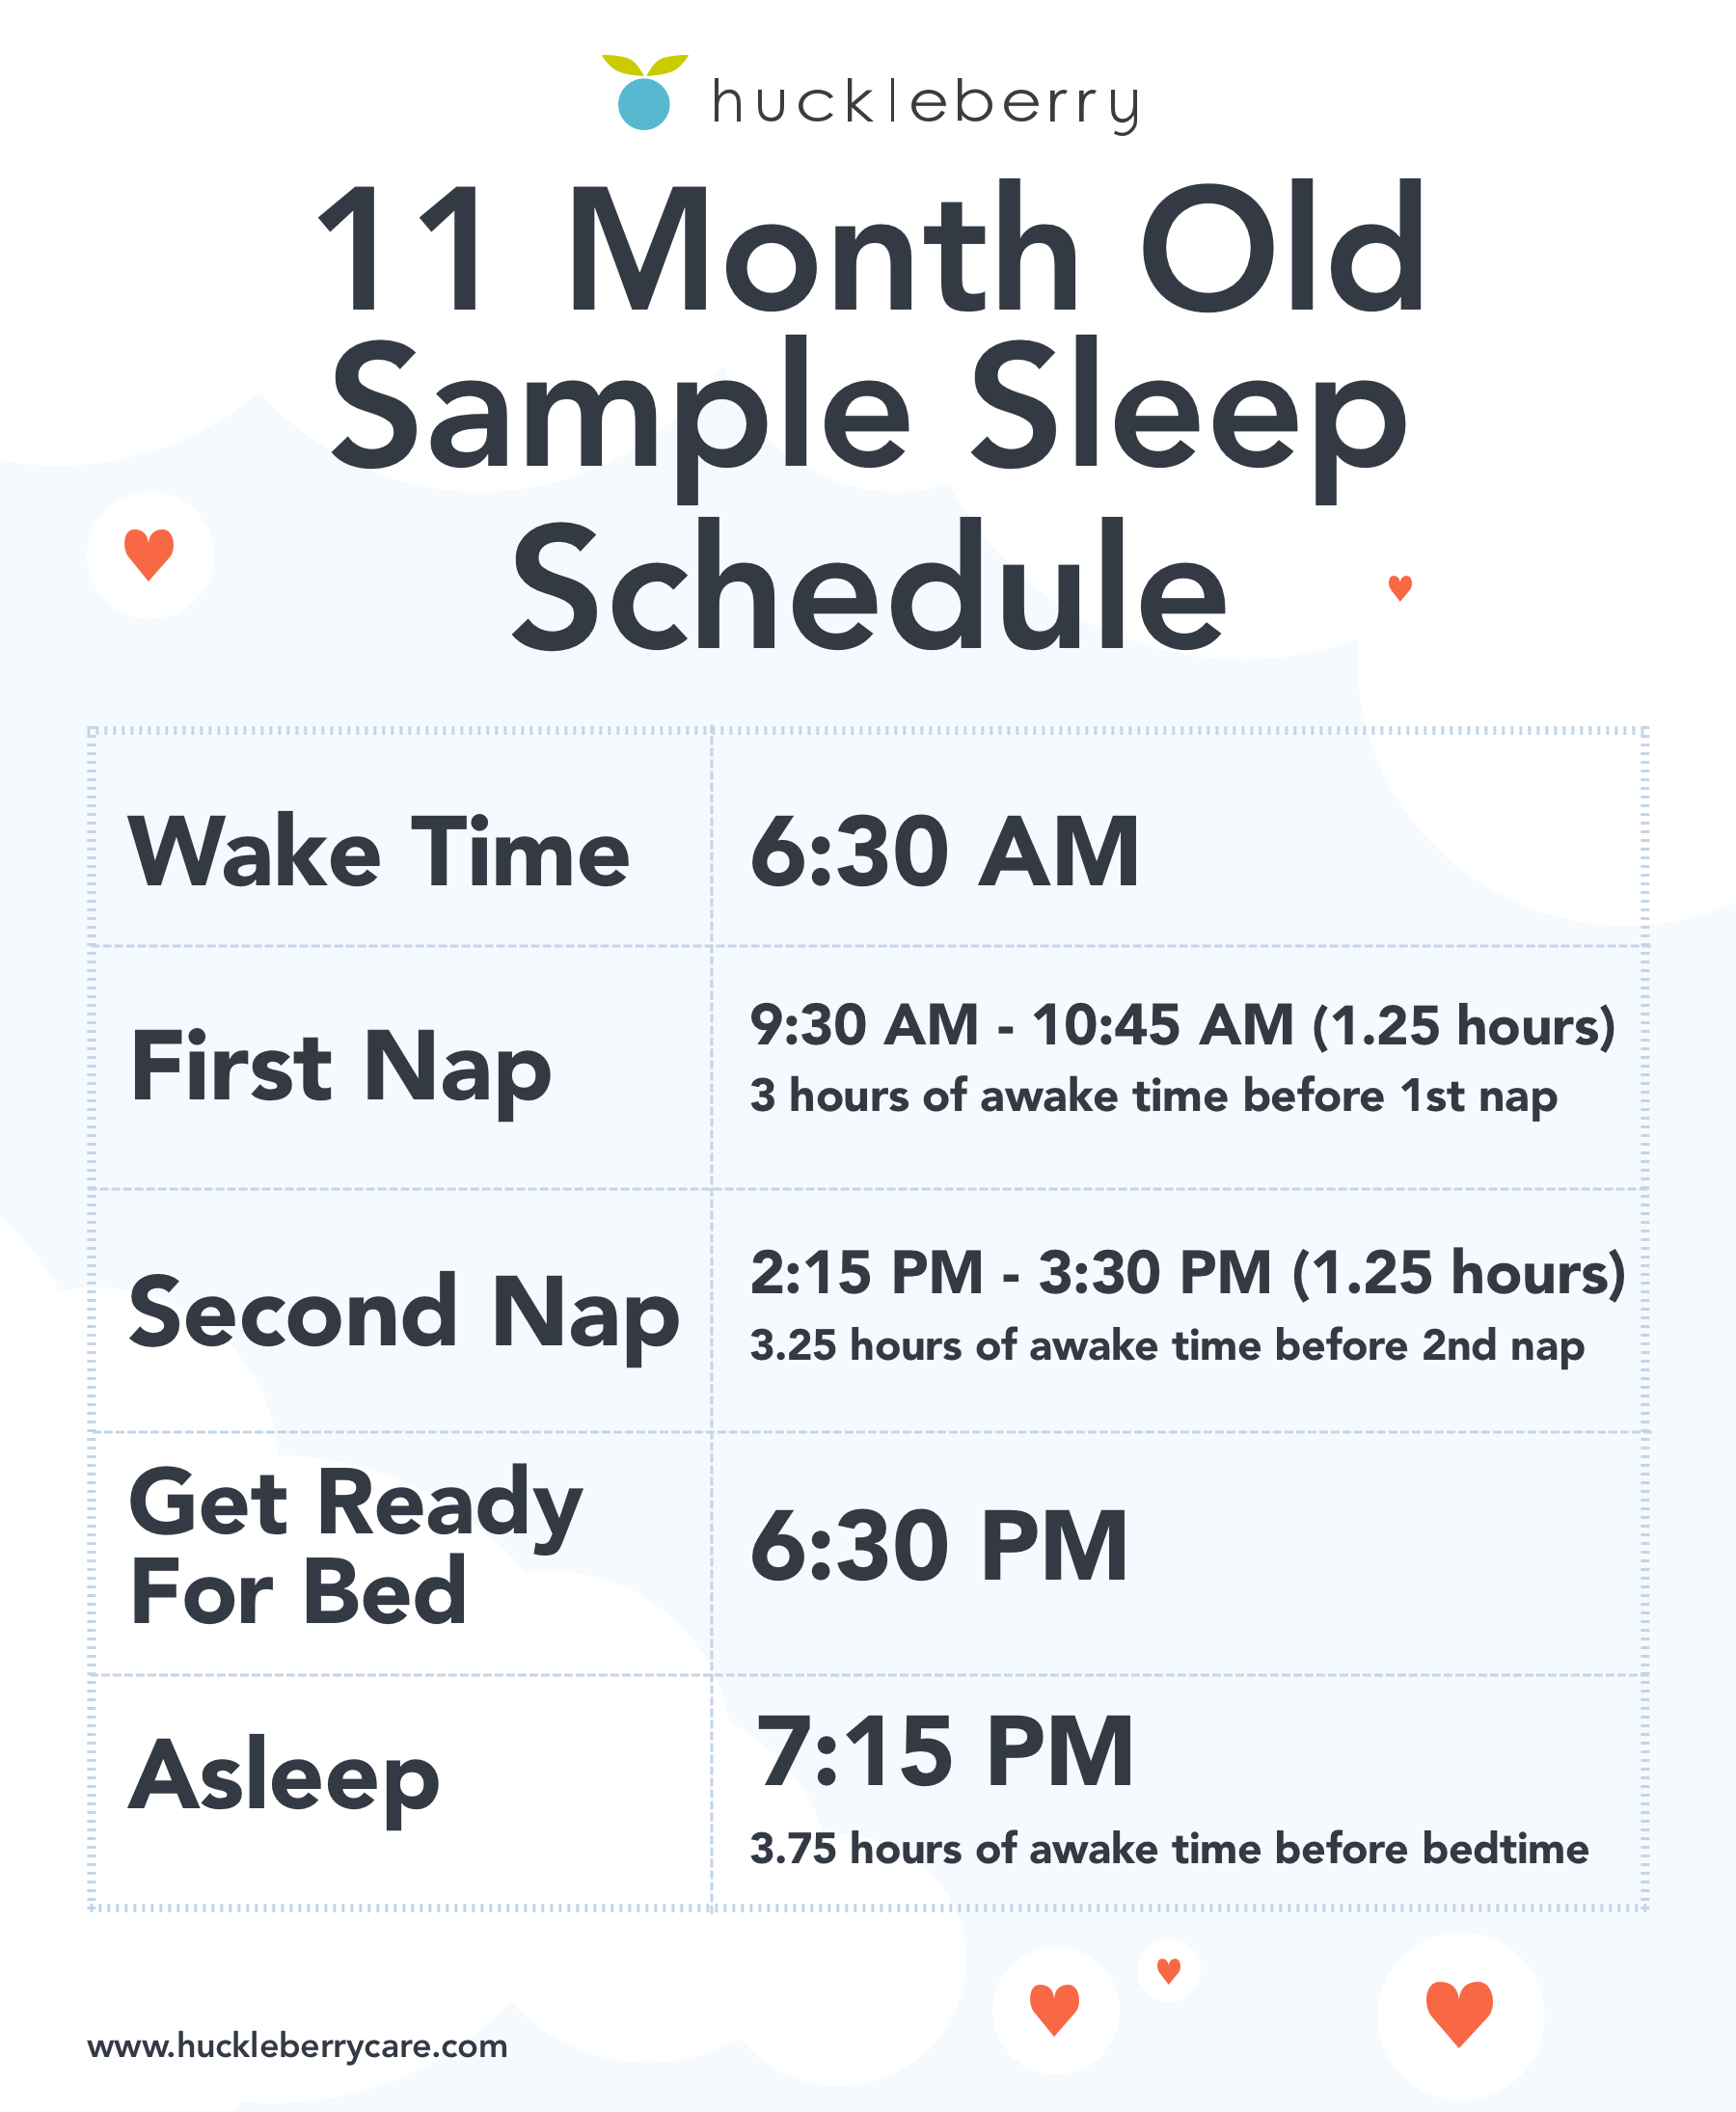 Huckleberry 11 Month Old Sample Sleep Schedule